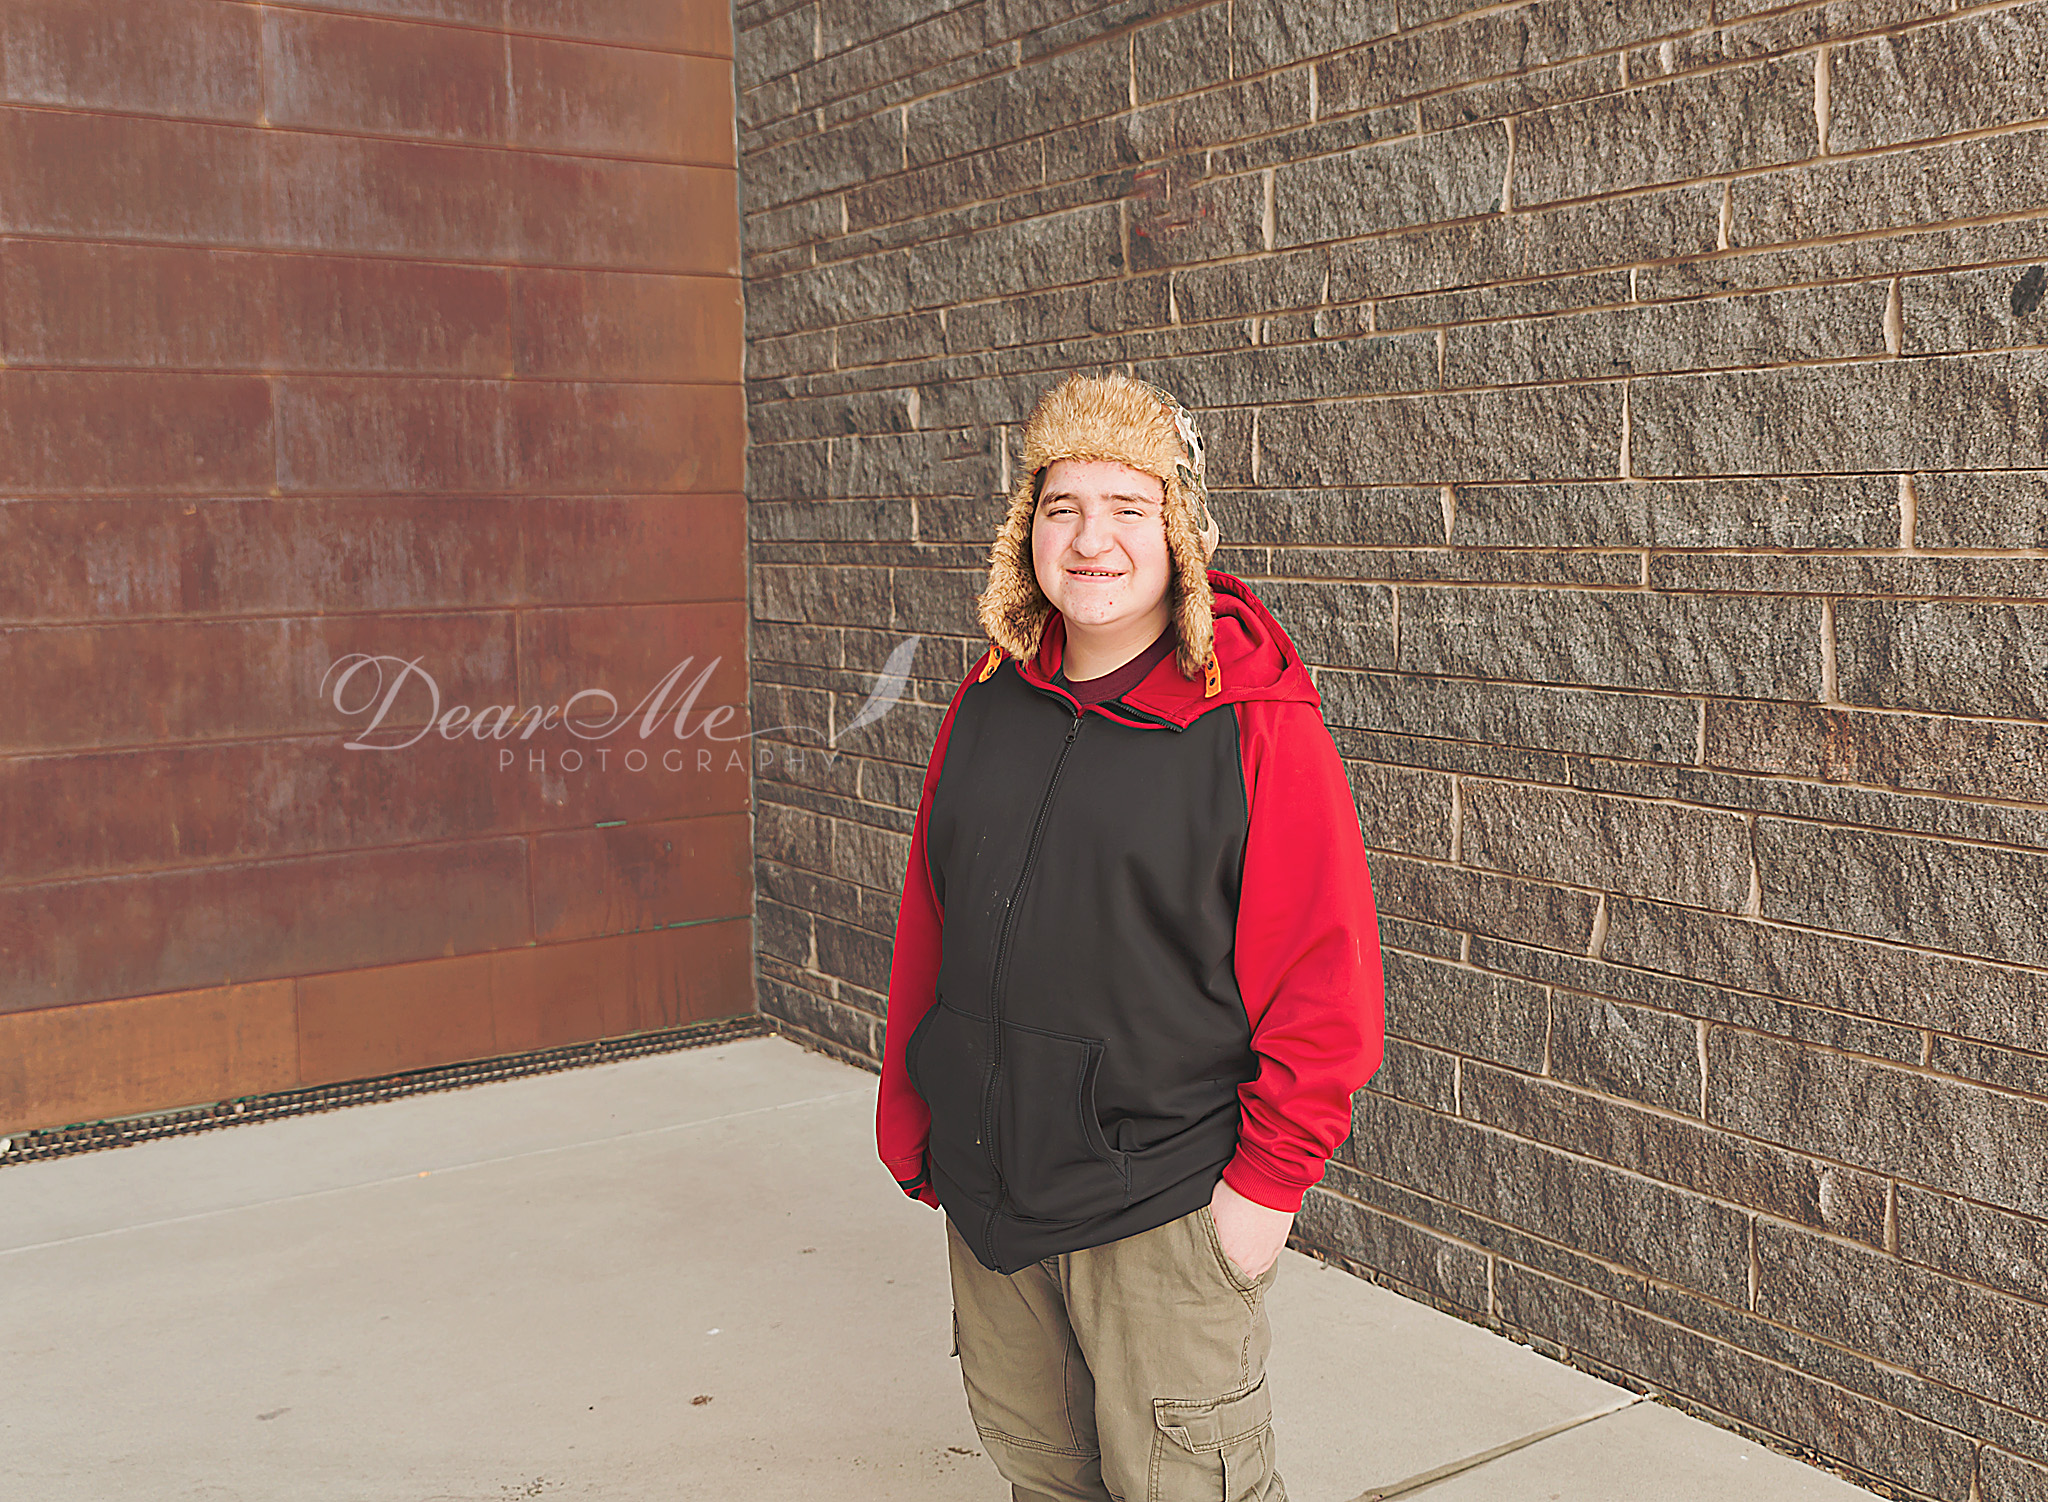 dear me photographer bismarck teen photographer teenage boy wearing black and red sweatshirt